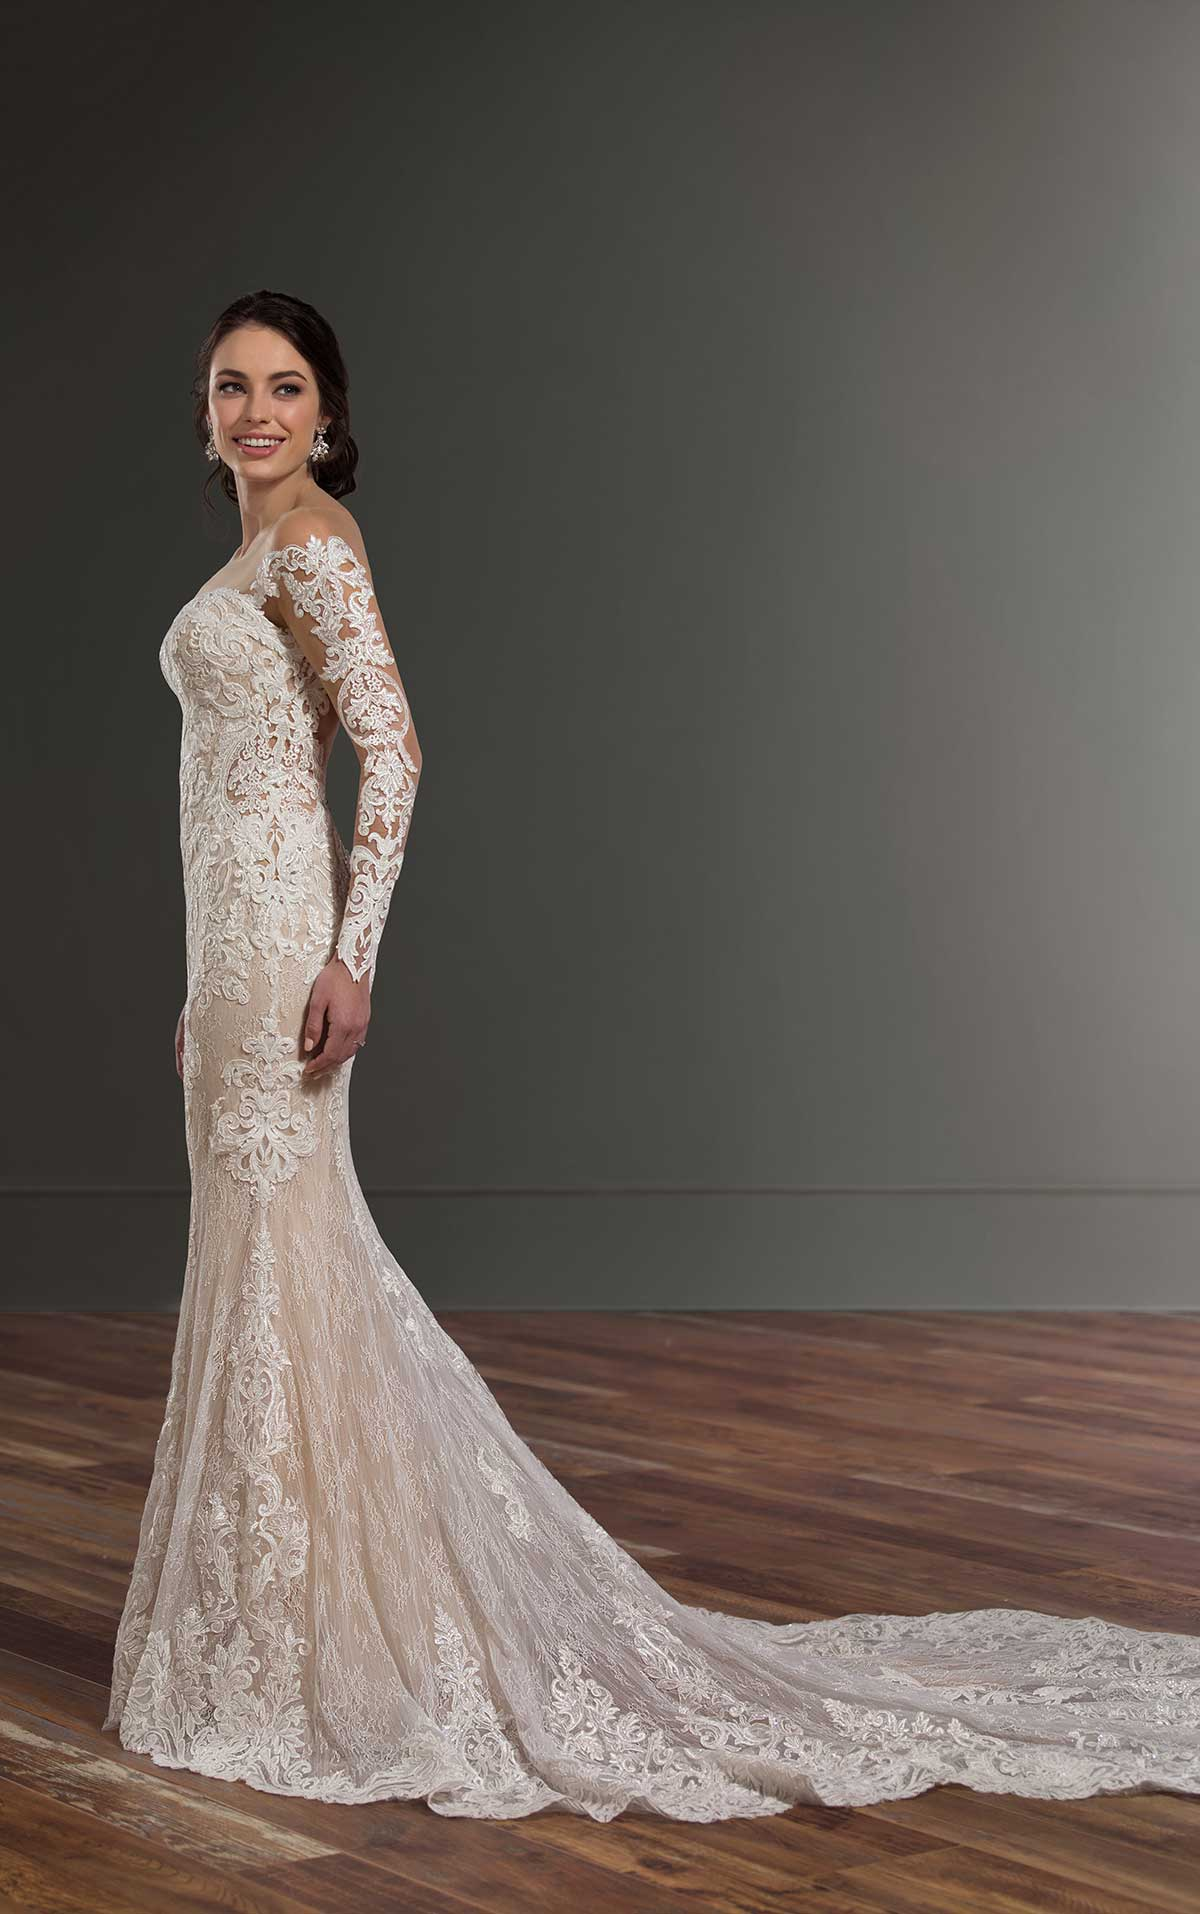 Mira Couture Martina Liana 1015 Wedding Dress Bridal Gown Chicago Boutique Custom Design Full Side